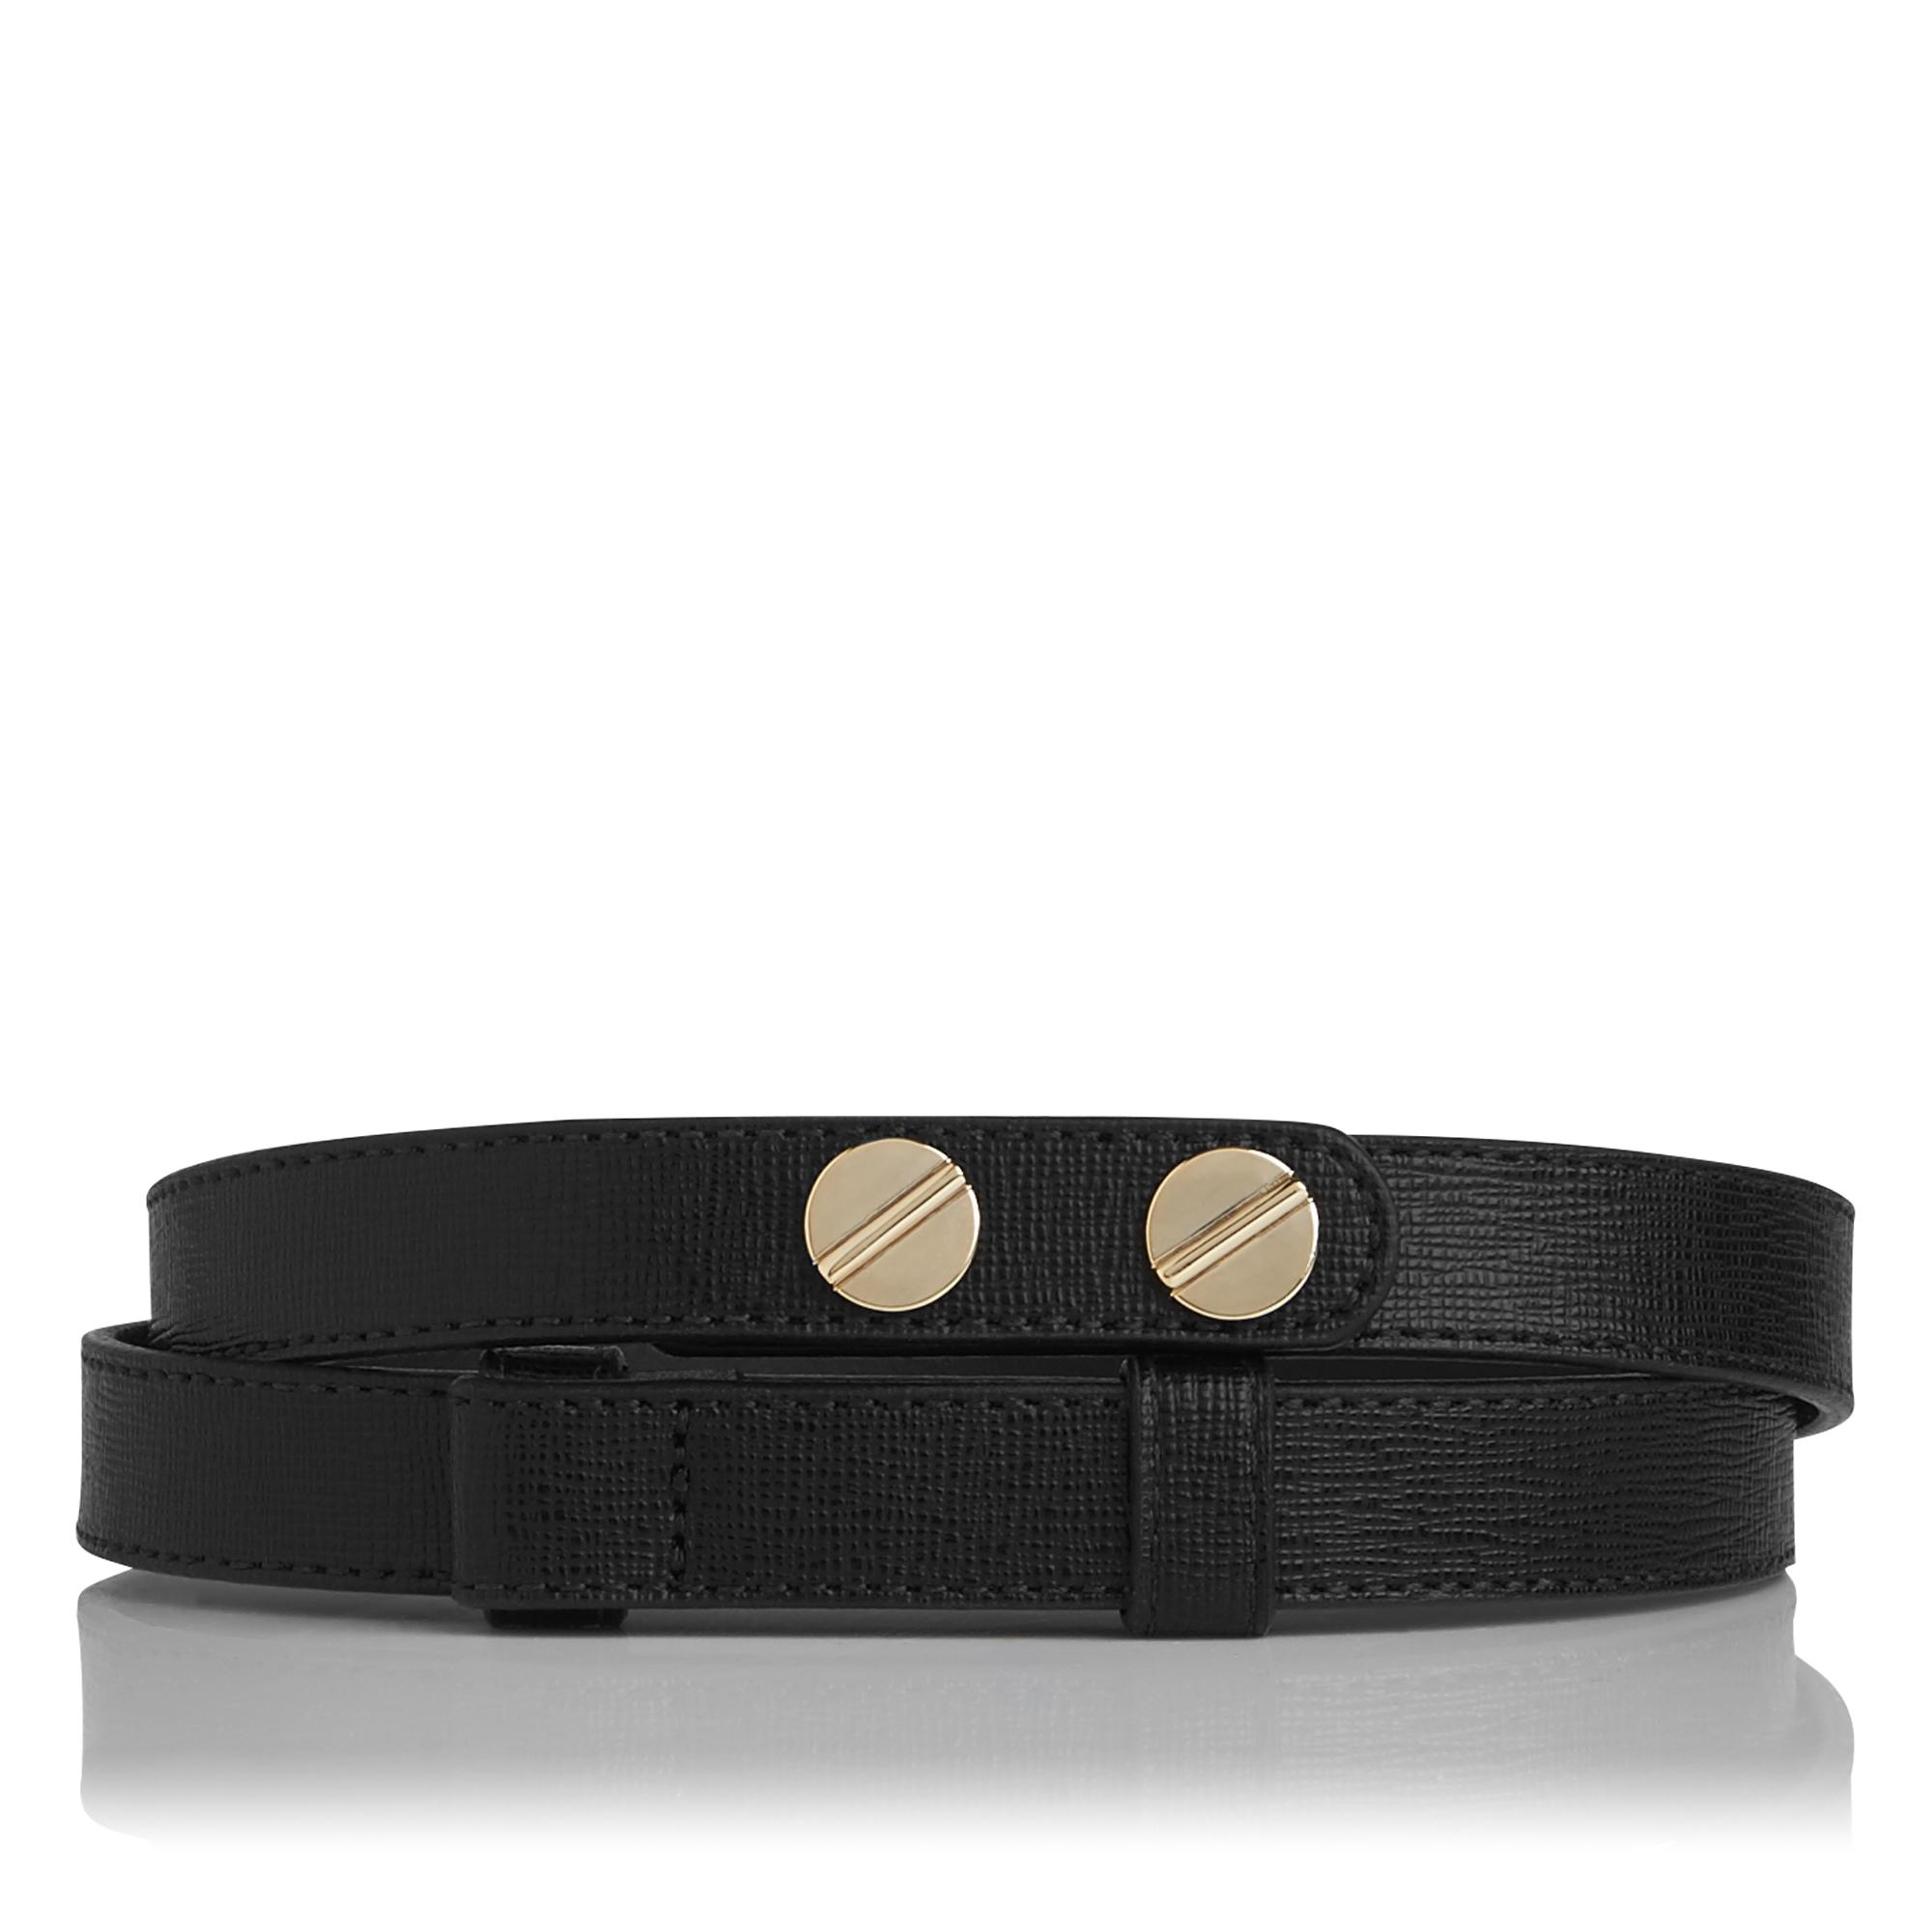 Zahara Black Belt